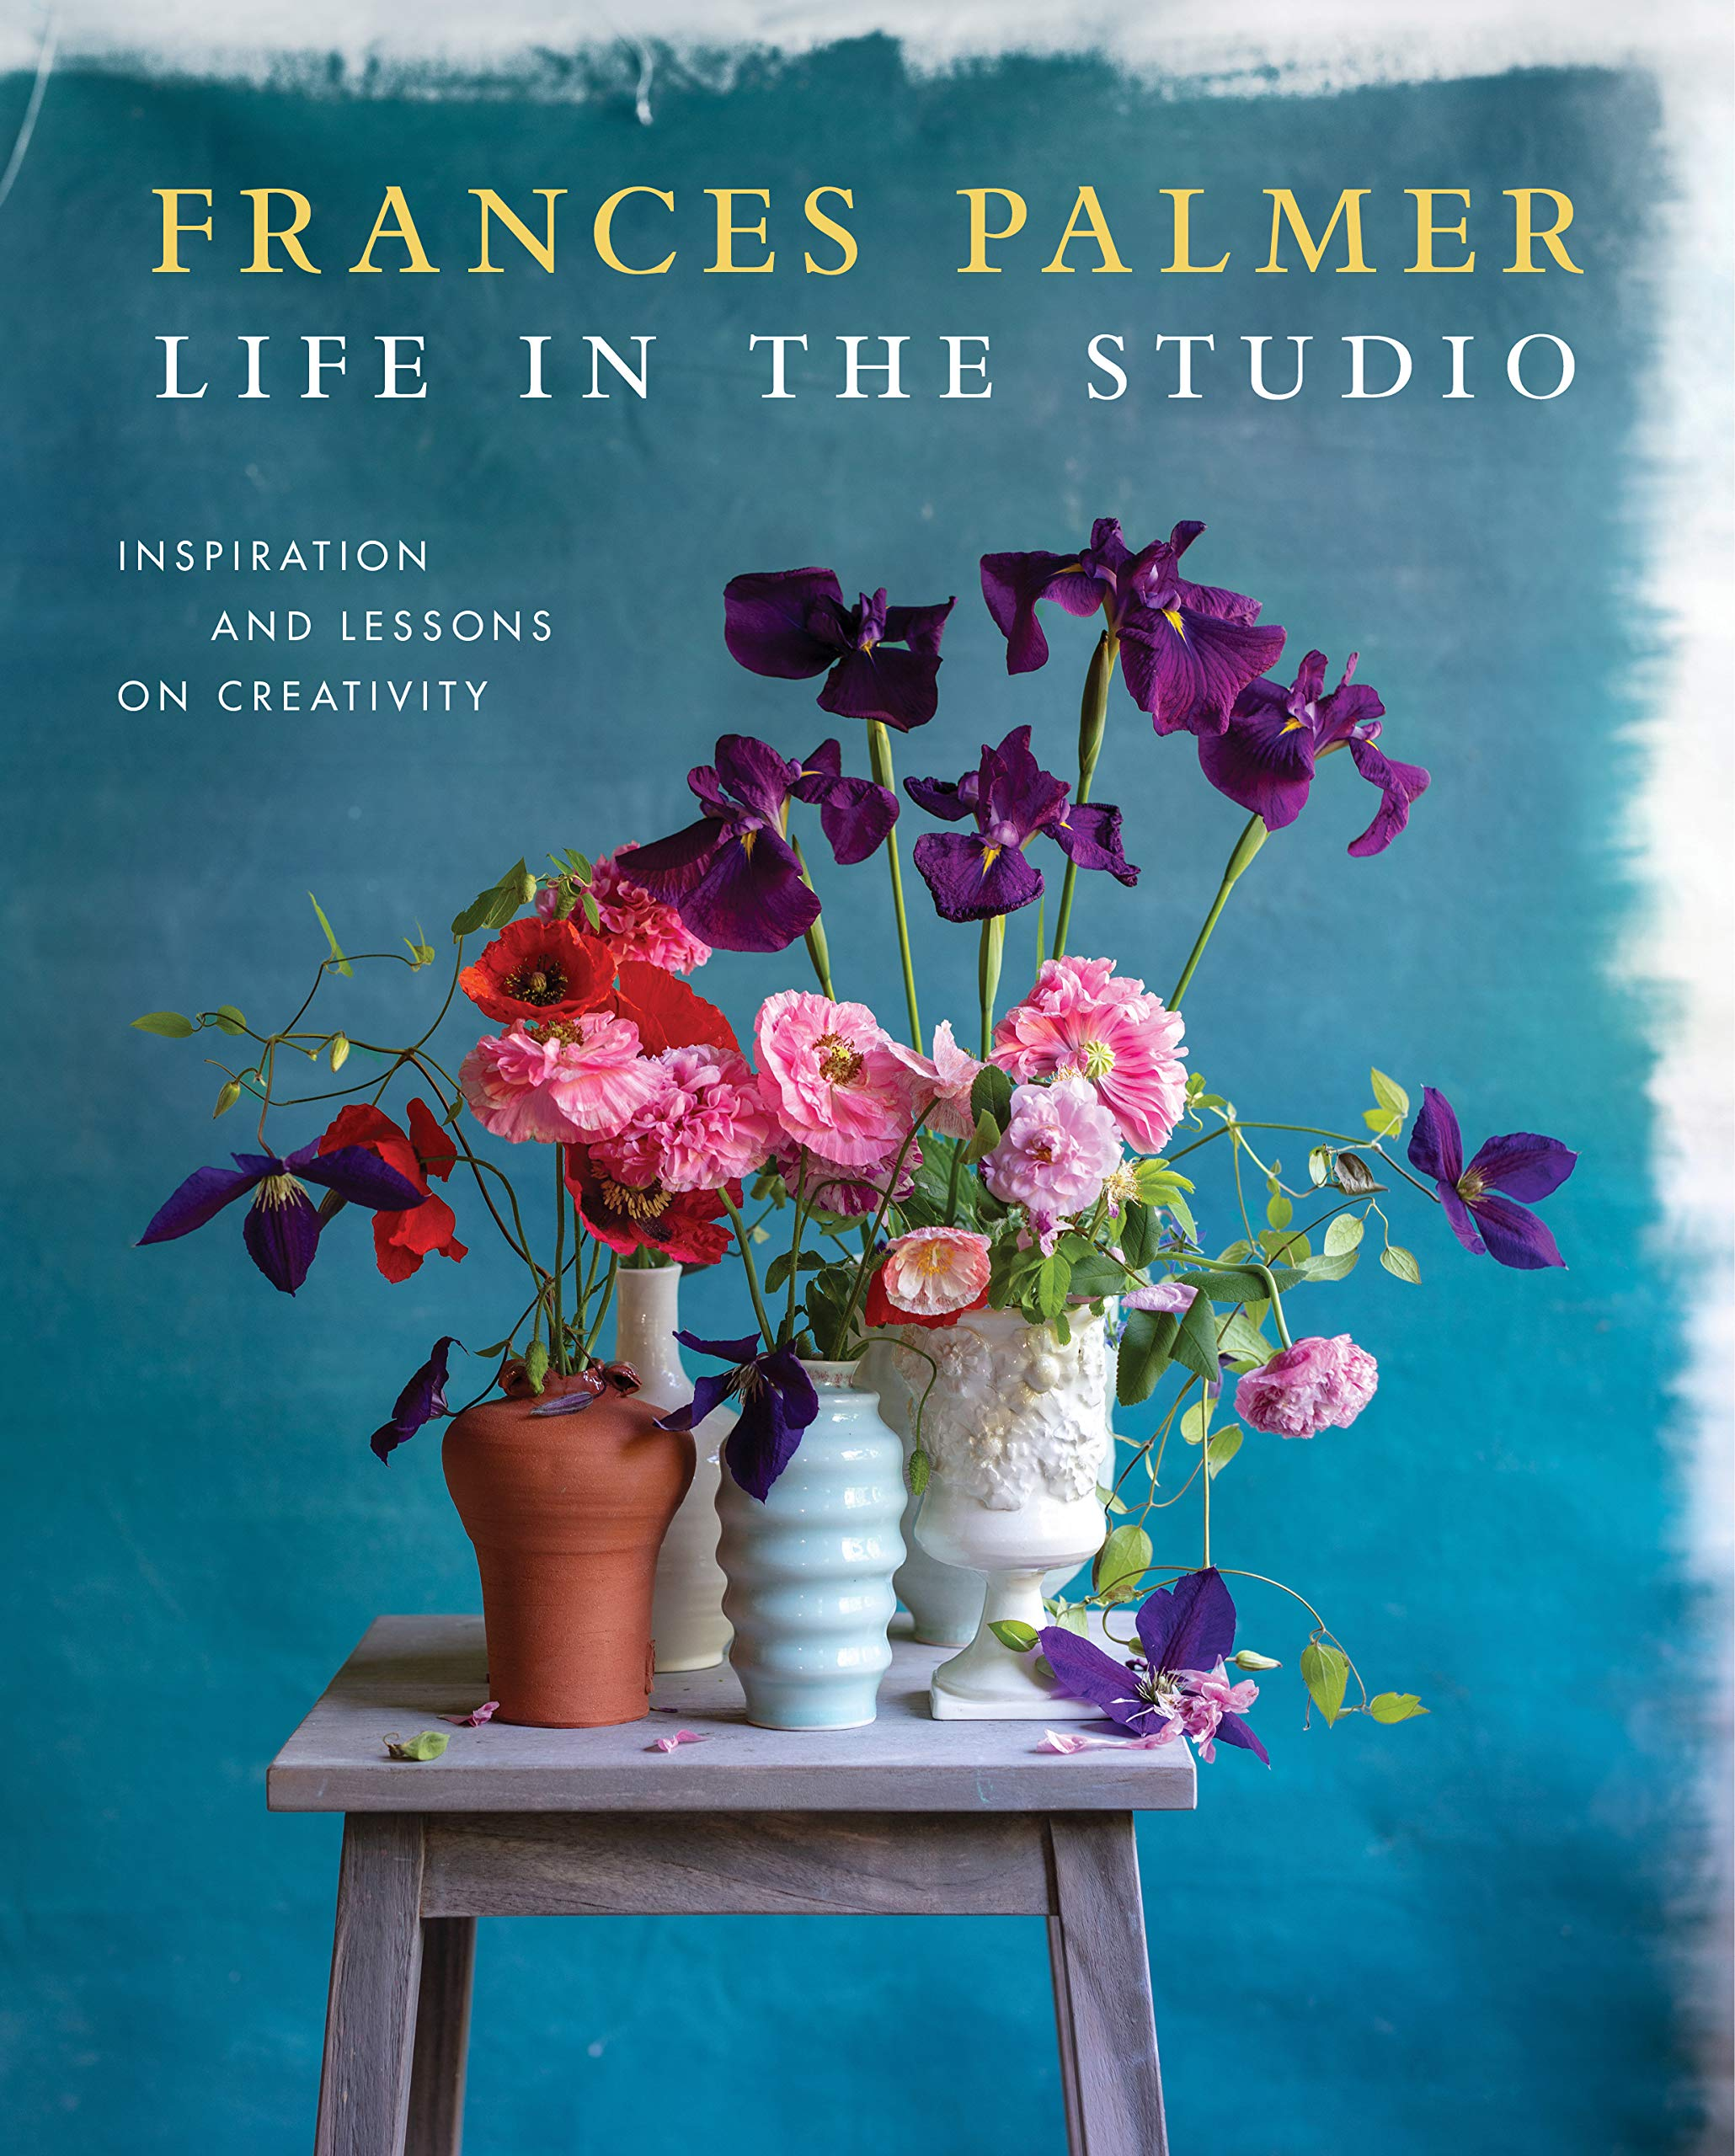 Life in the Studio: Inspiration and Lessons on Creativity by Frances Palmer